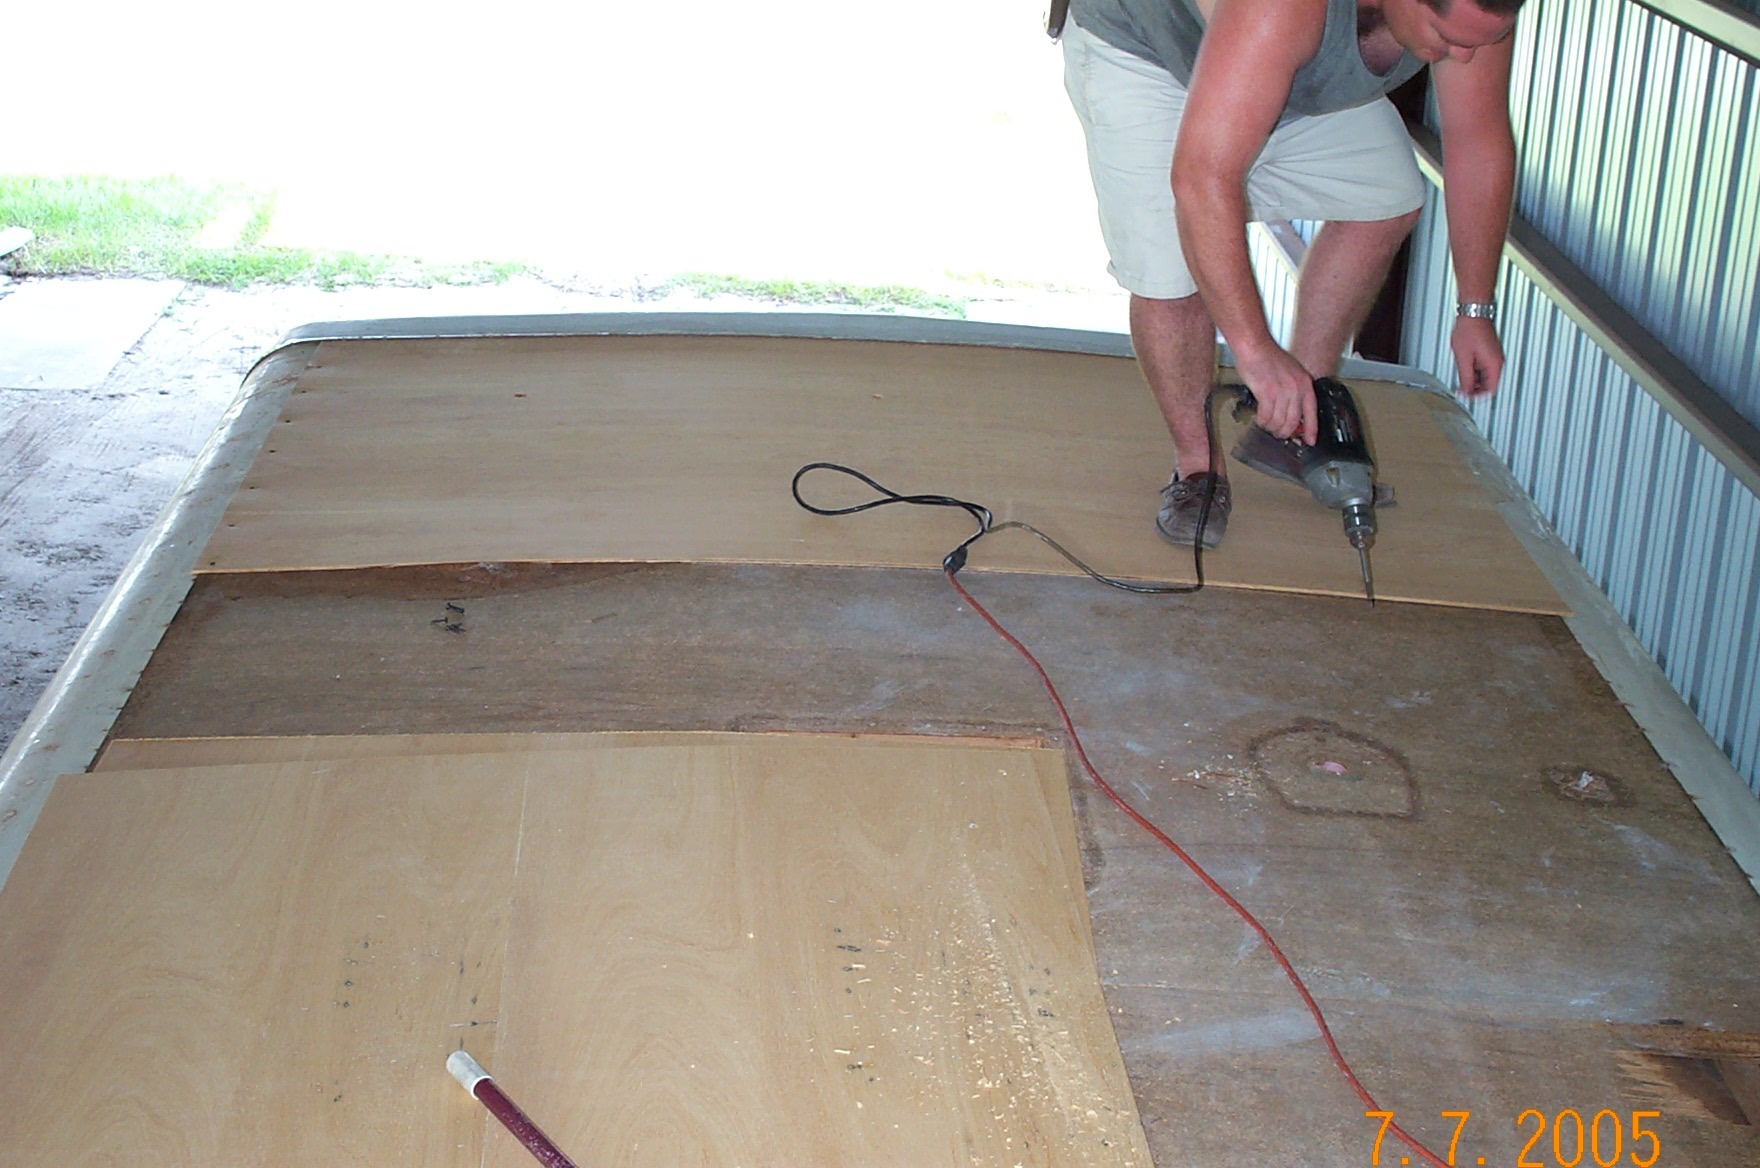 Replacing Your RV Roof: Insist On Formaldehyde Free Luan And No VOC Glue